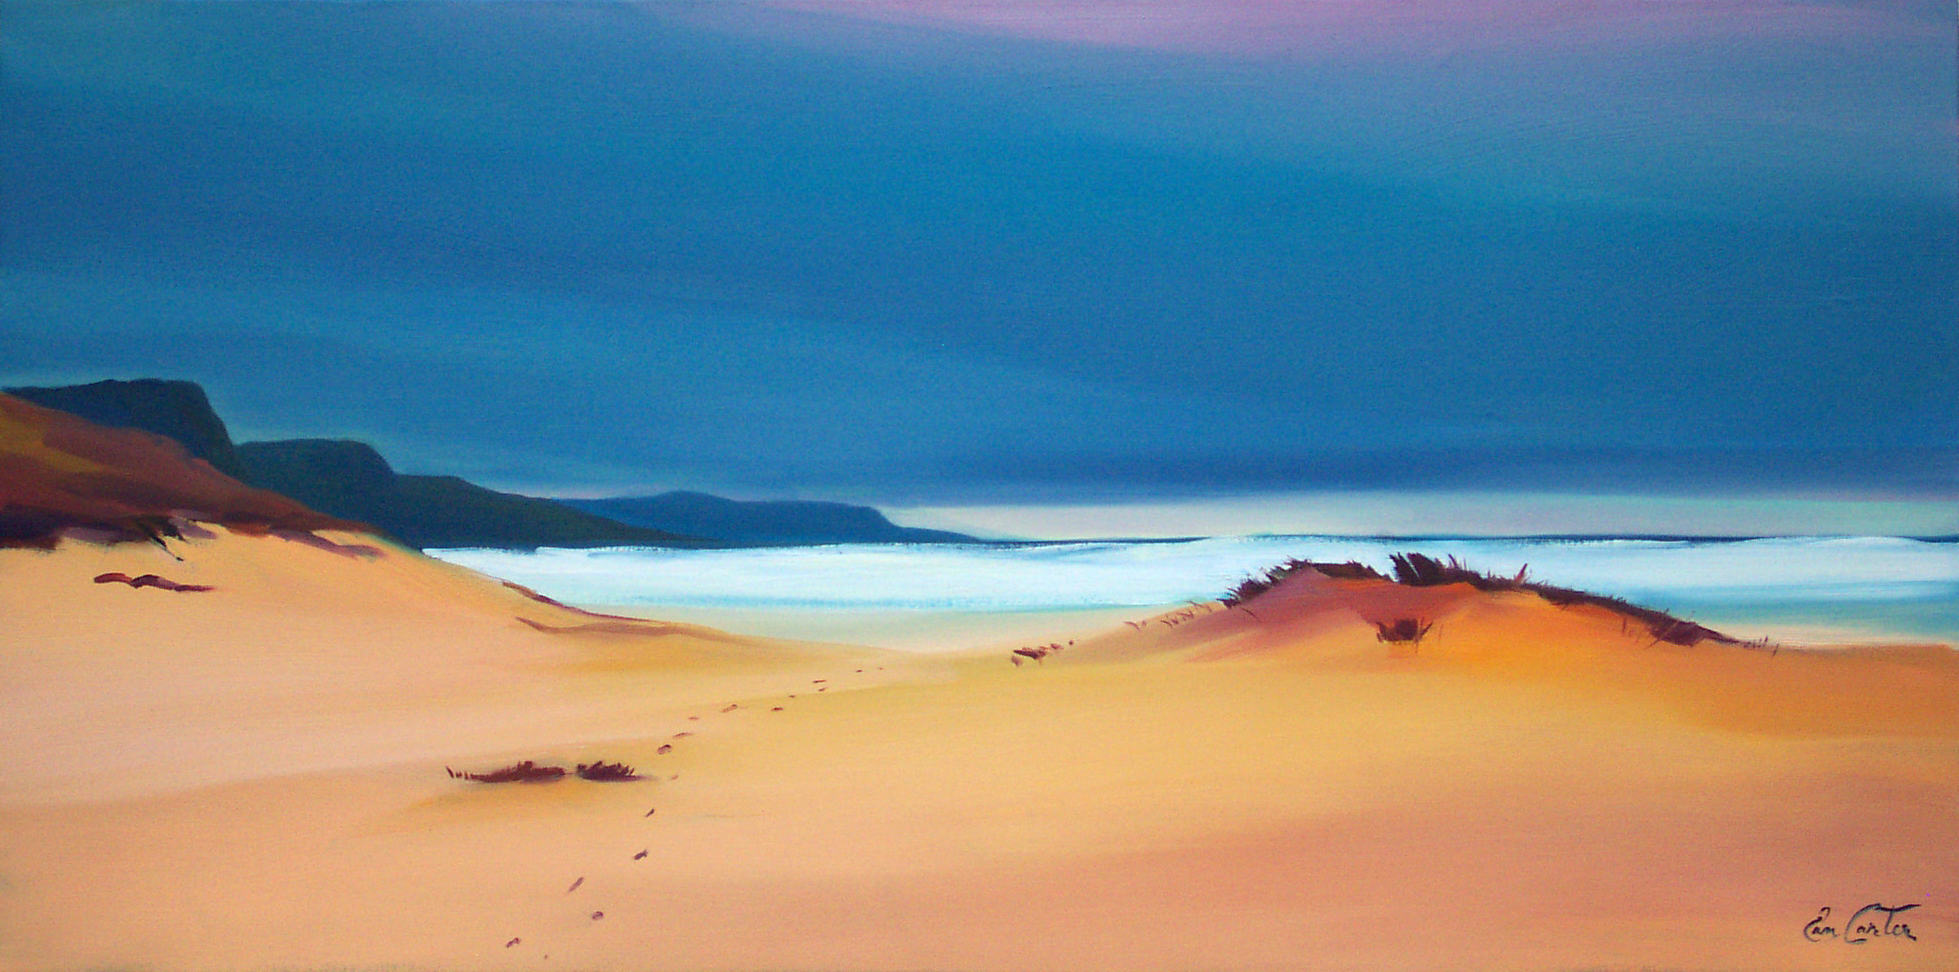 Footsteps Through The Dunes 20x40